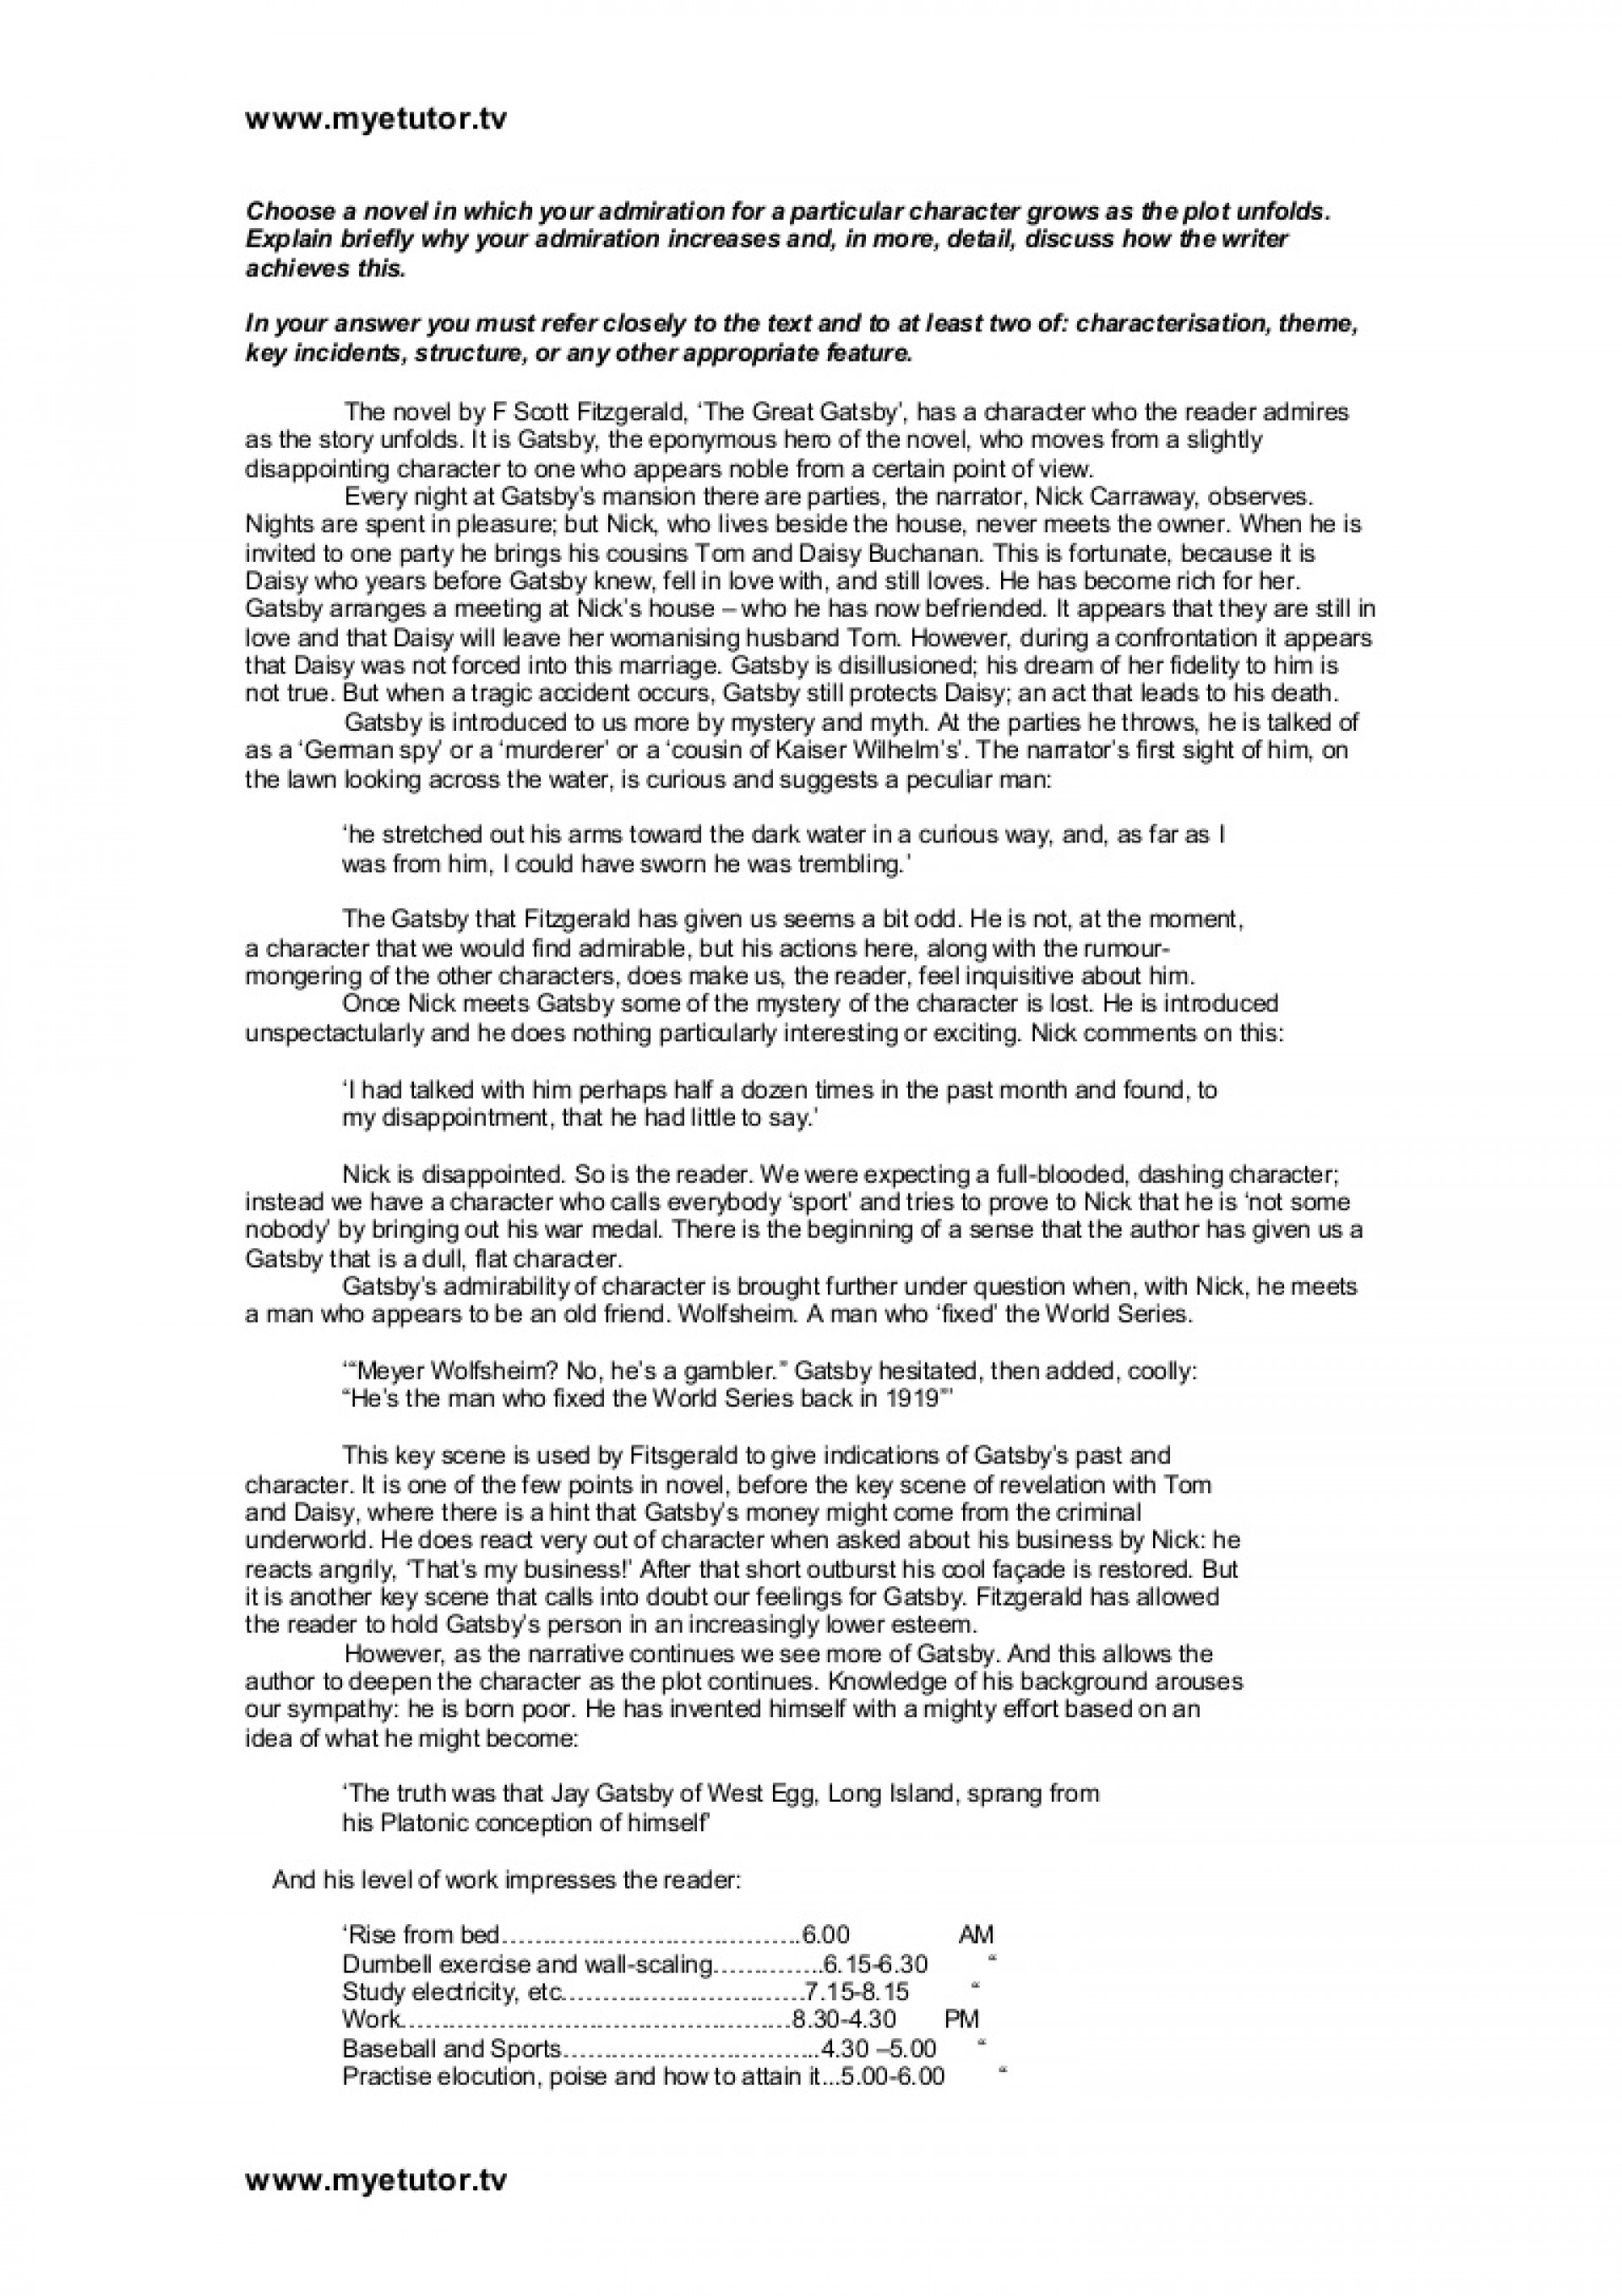 012 Thegreatgatsby Essayoncharacter Phpapp01 Thumbnail The Great Gatsby Essay Topics Exceptional Prompts American Dream Questions And Answers Research 1920